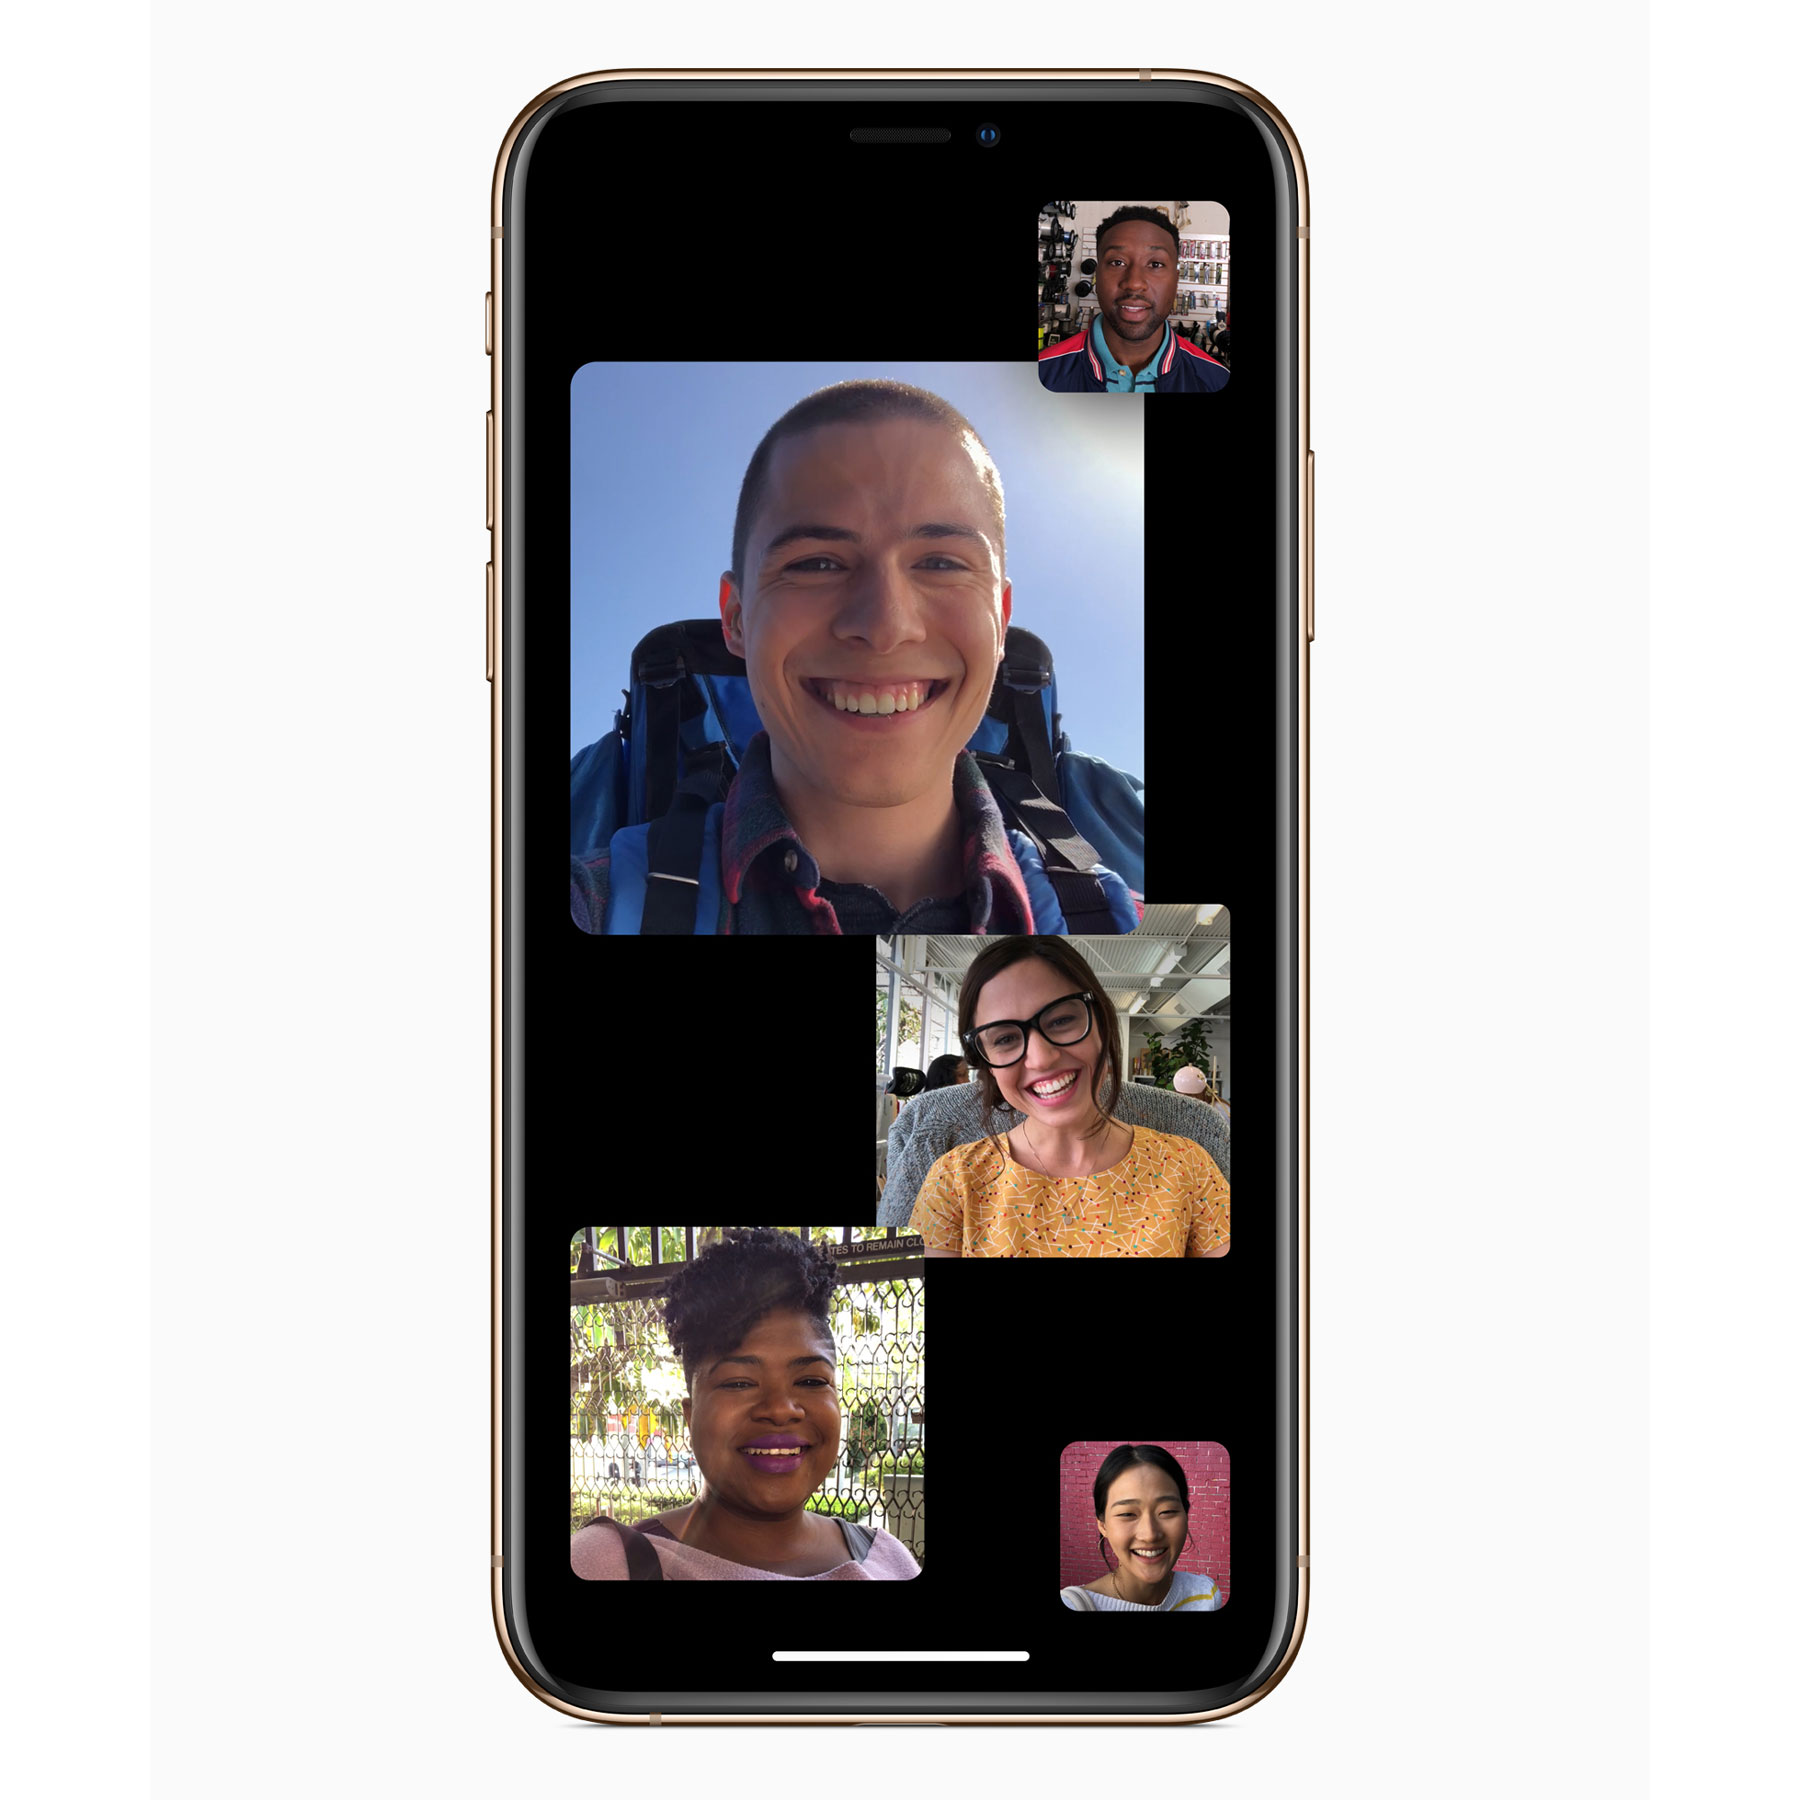 Facetime app opened on an iPhone